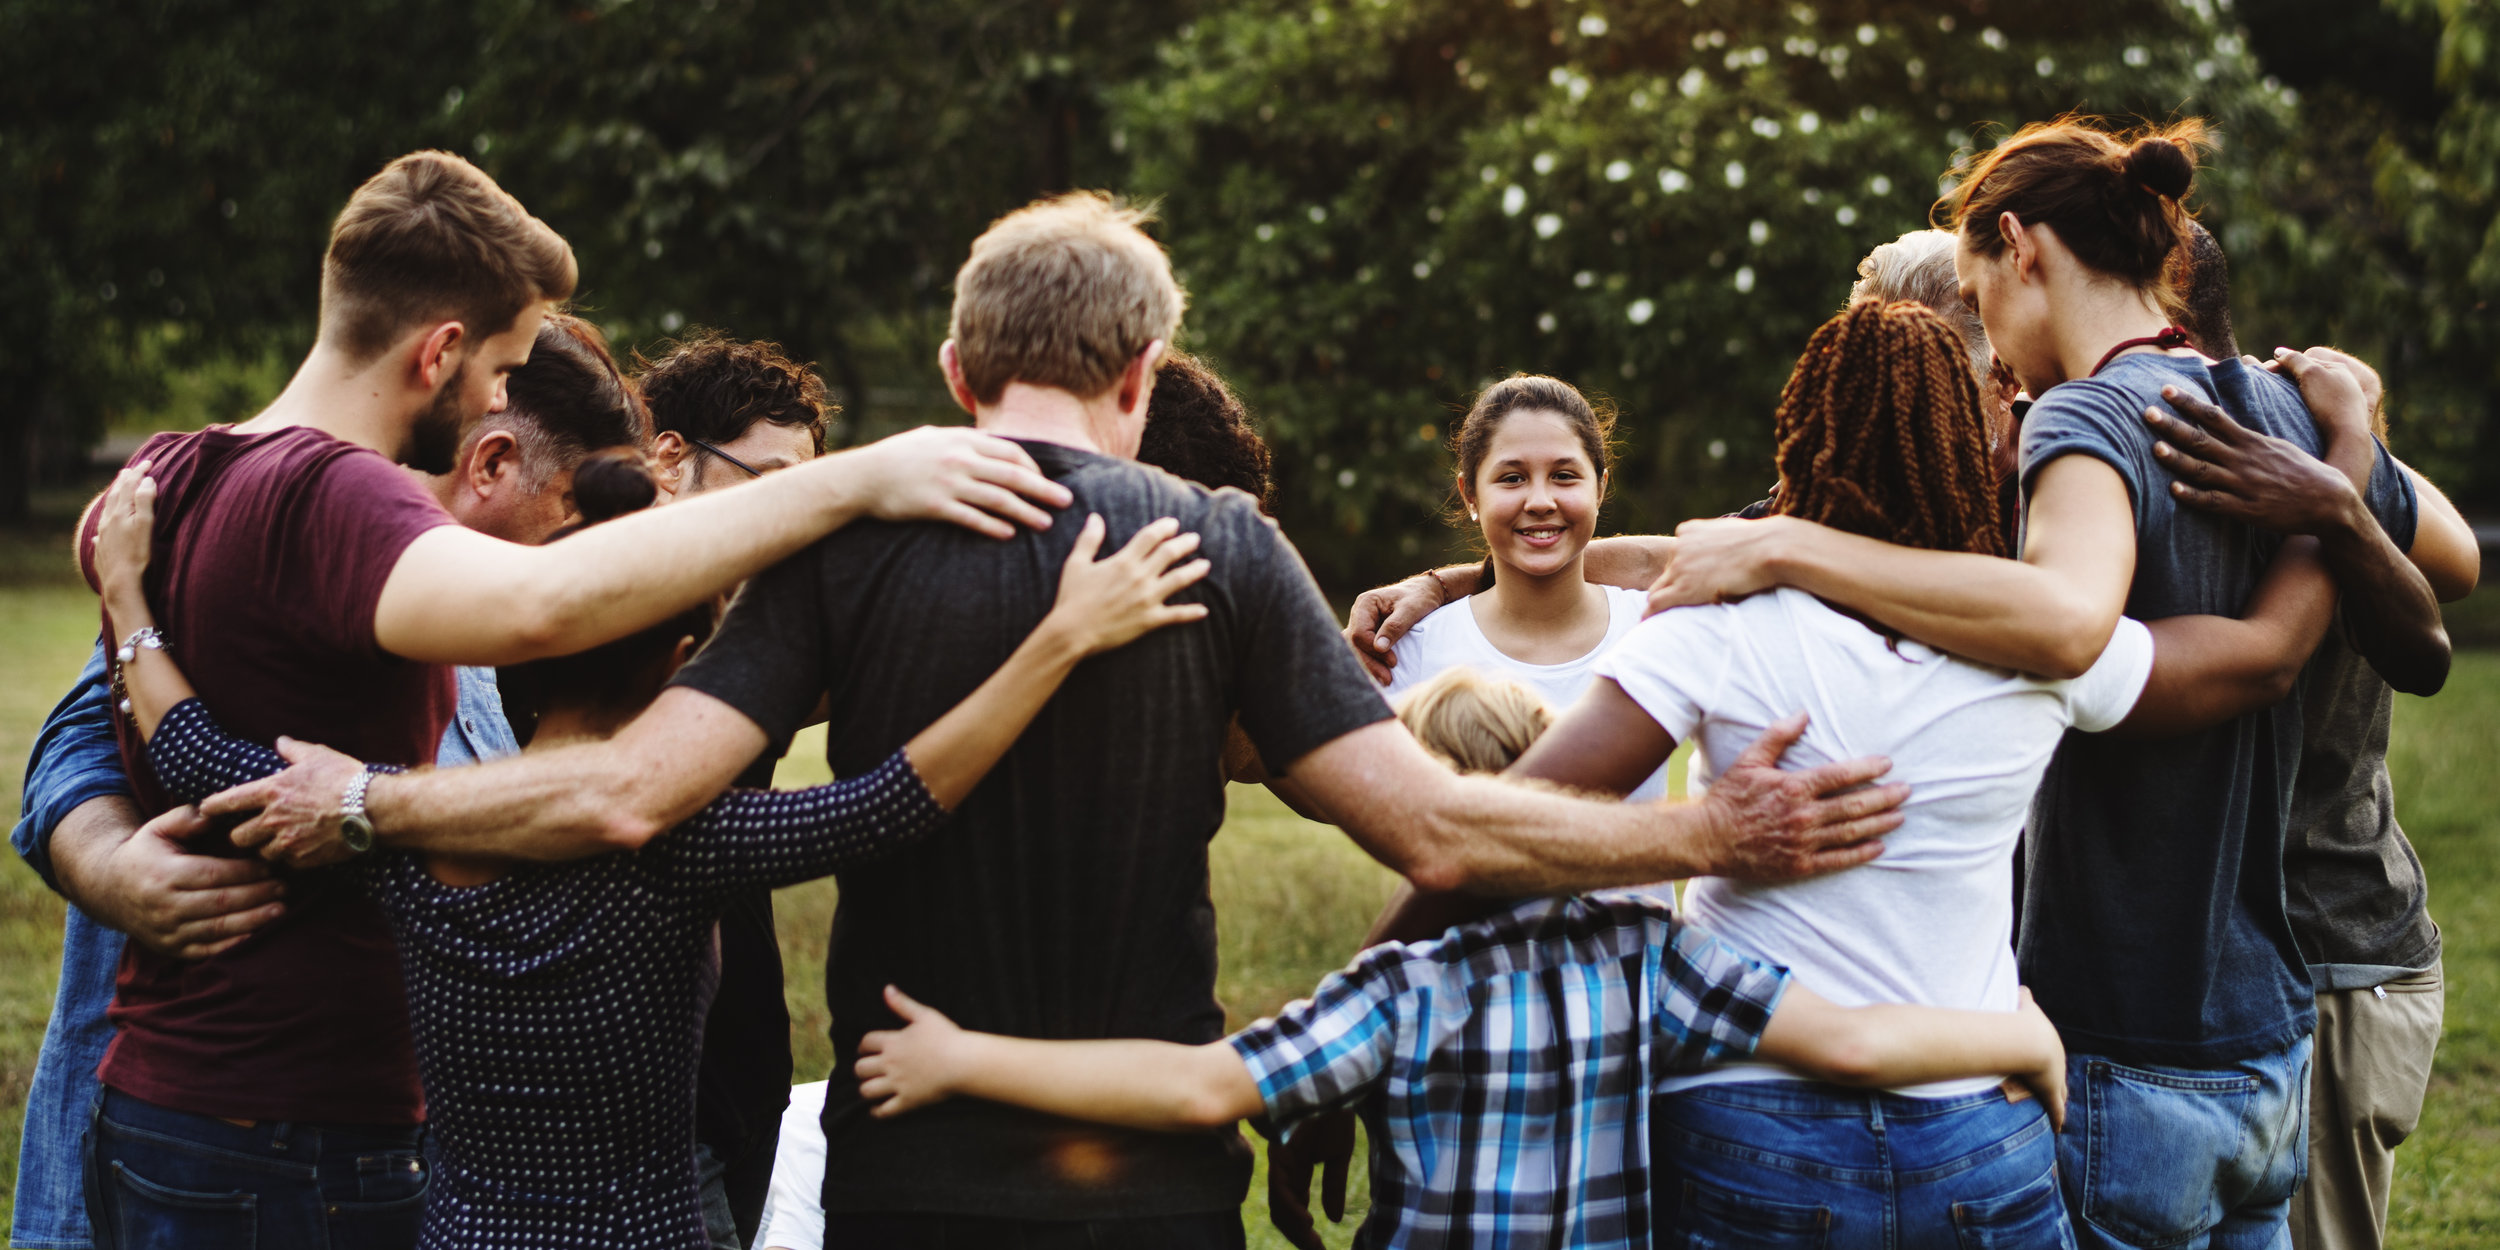 VOLUNTEER WITH YOUTH MINISTRY -